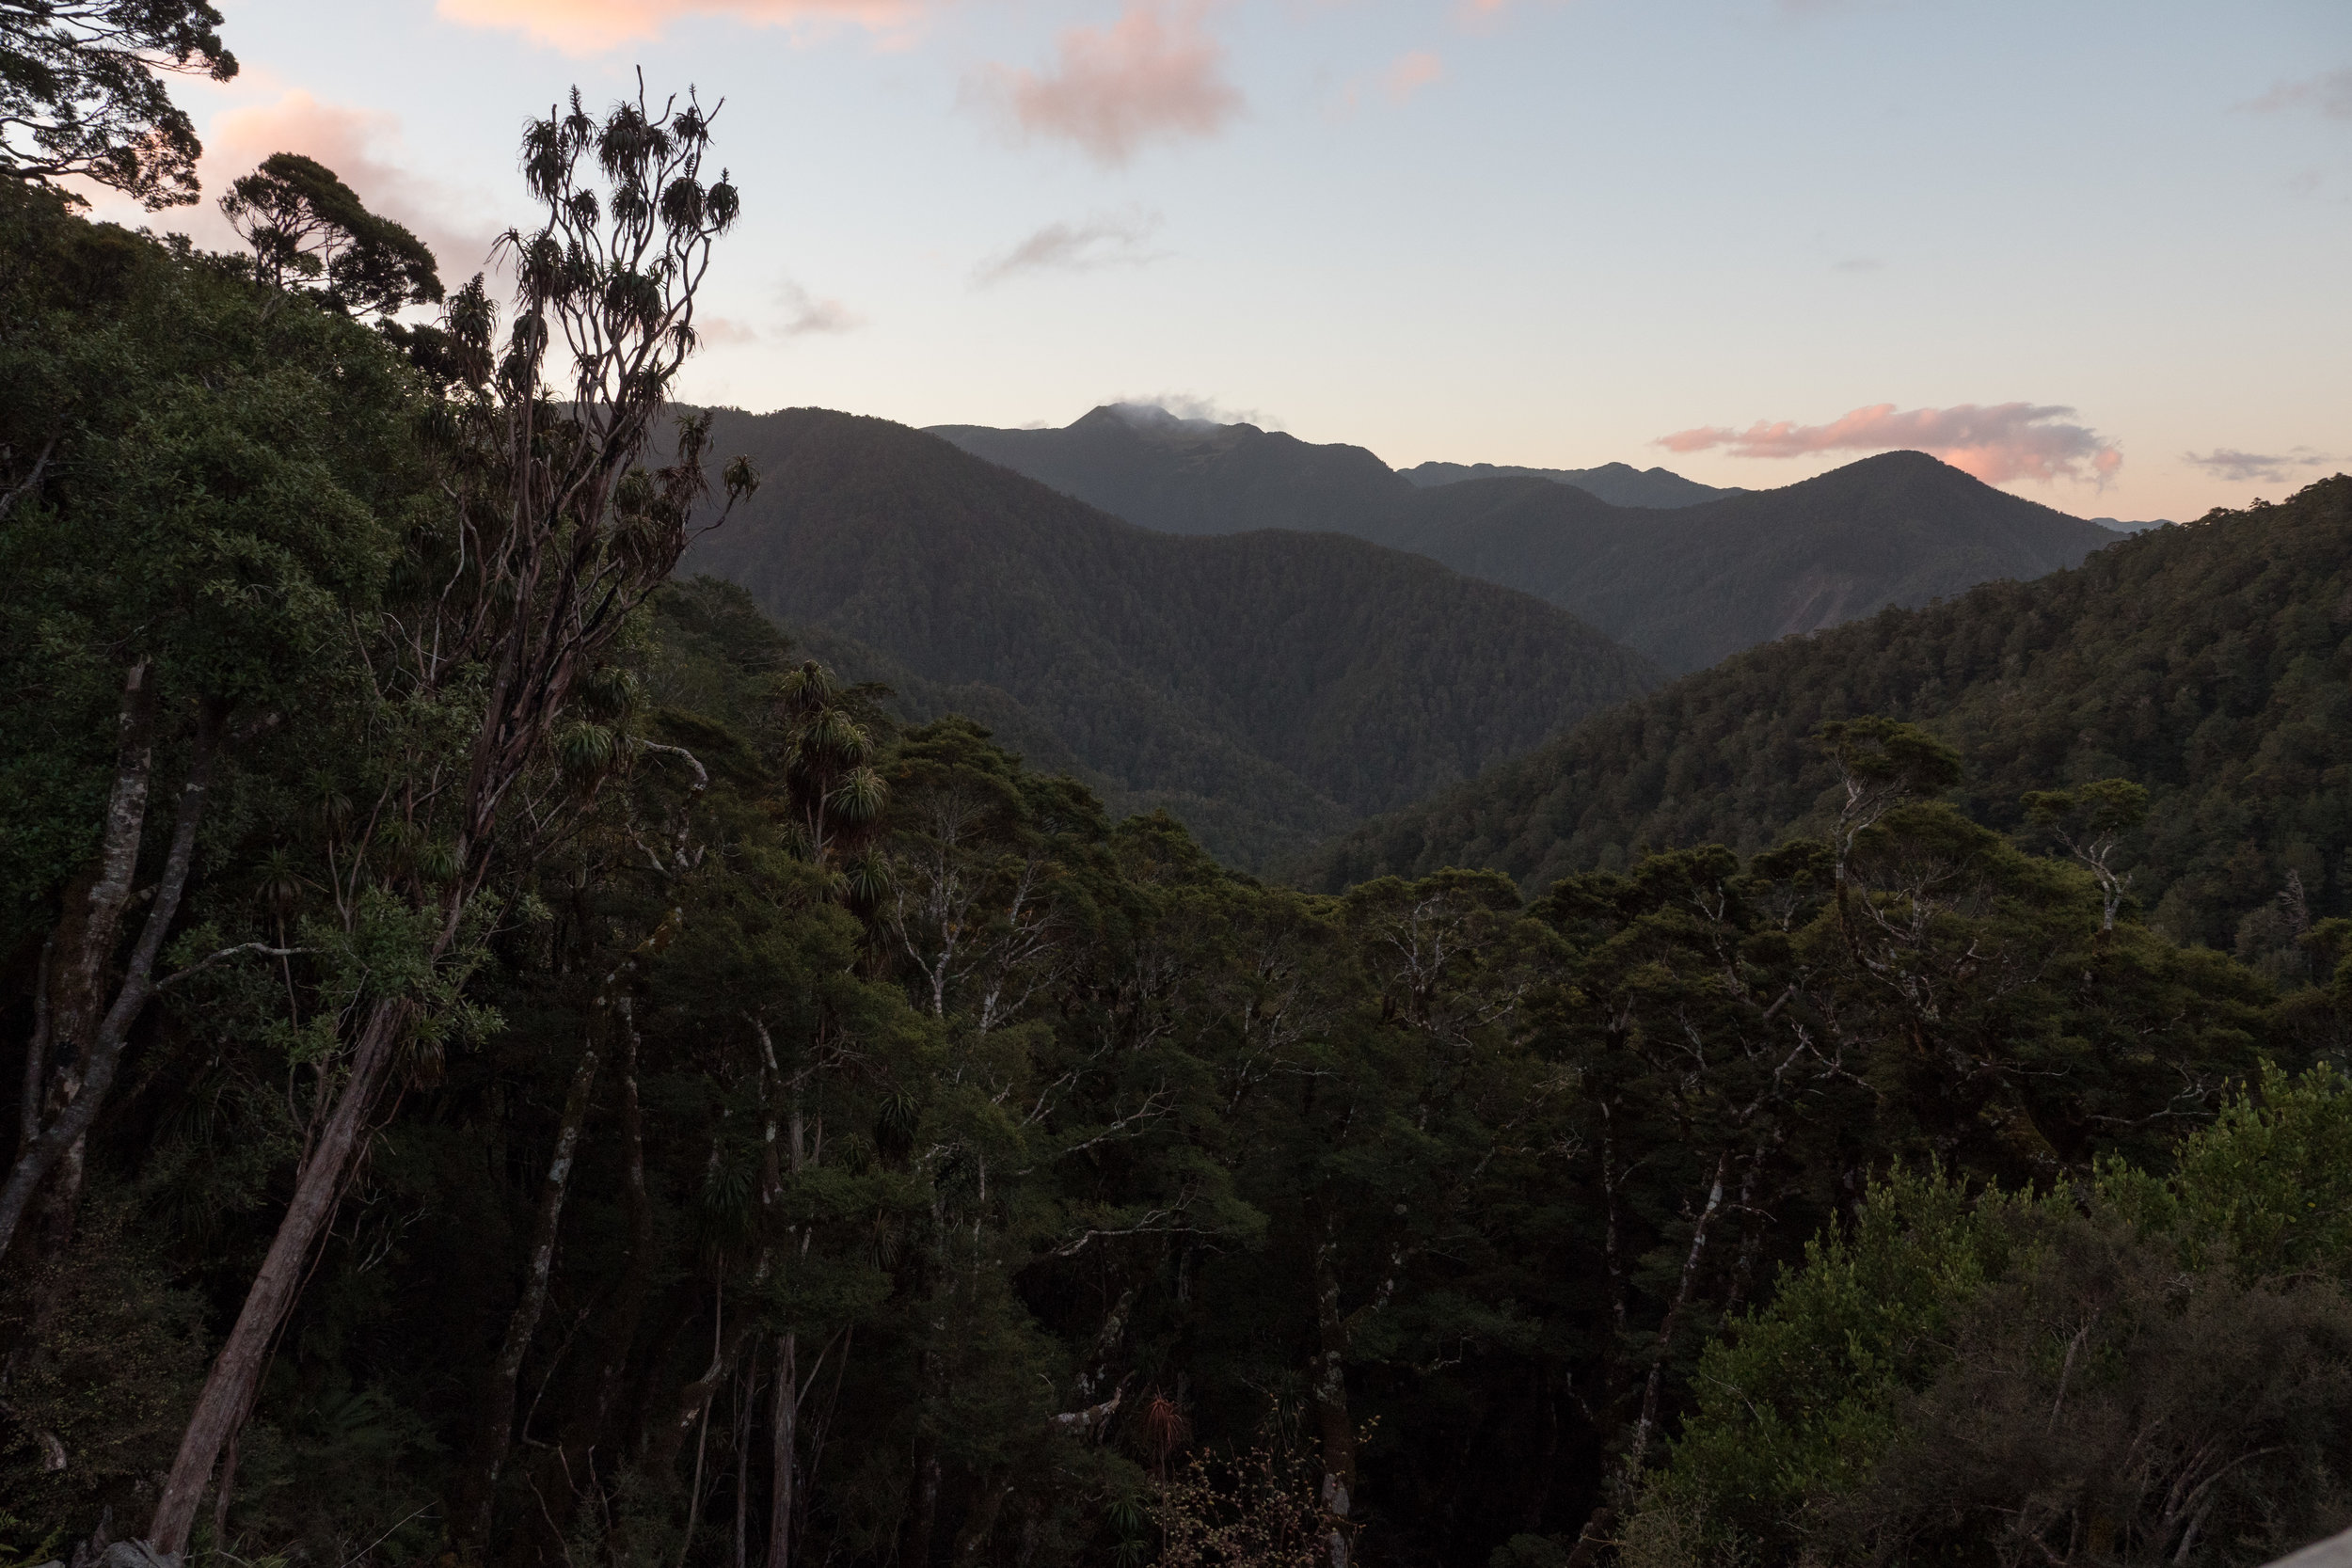 The View from Lyell Saddle Hut